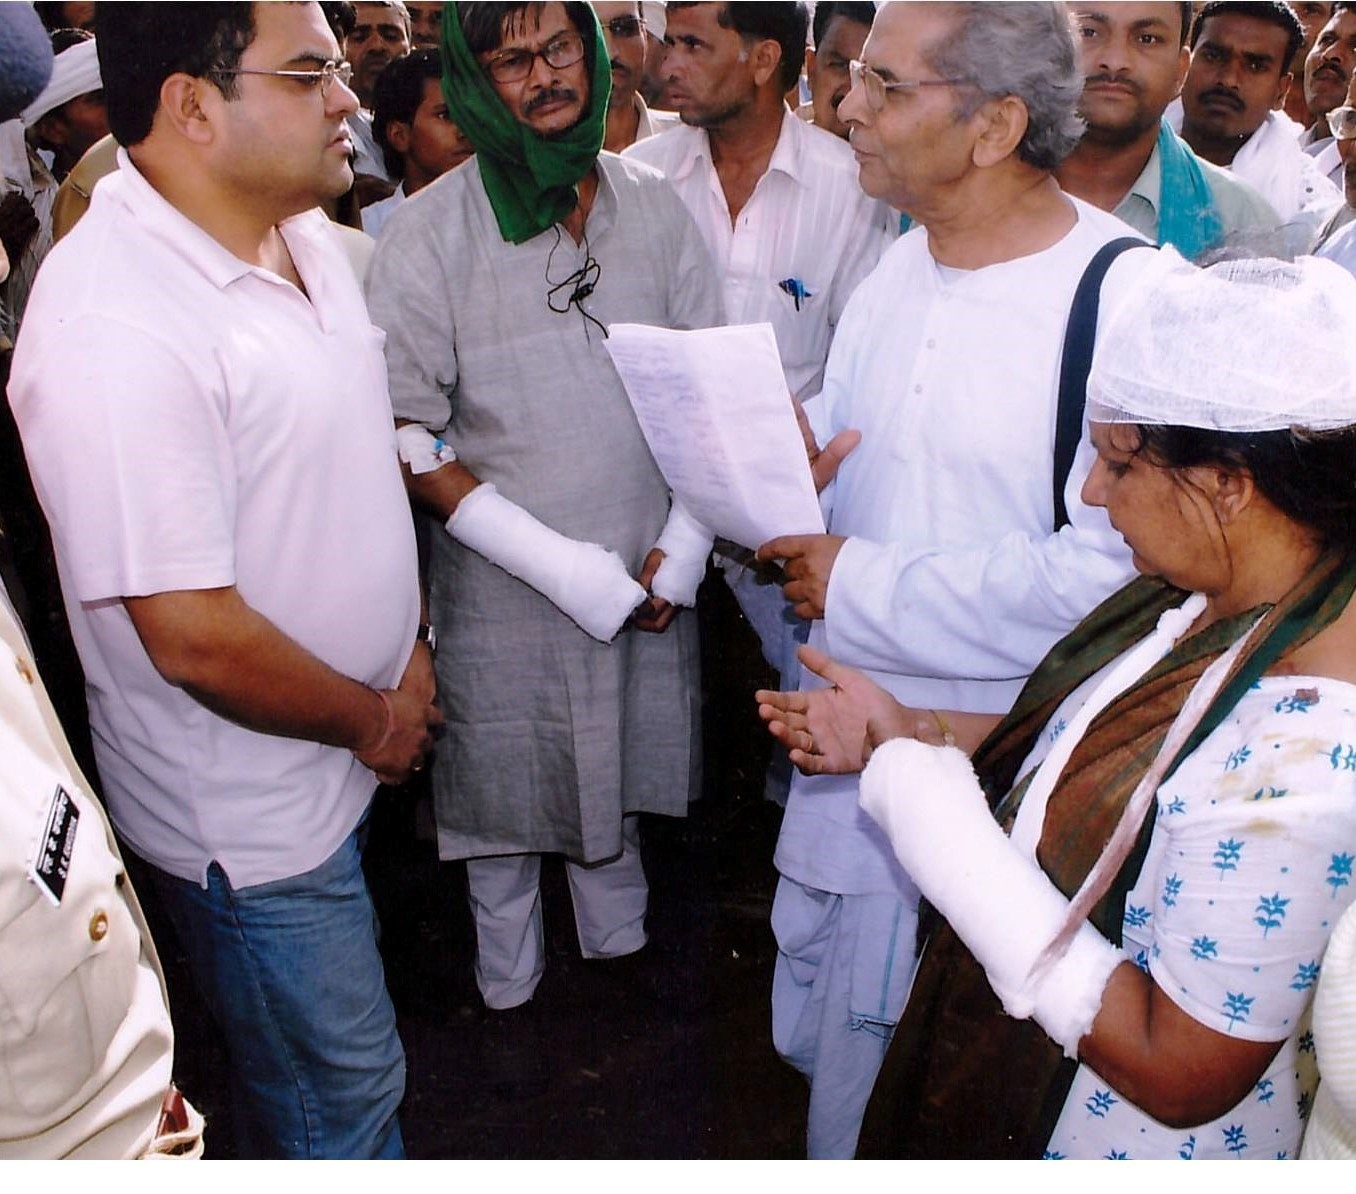 Victims of alleged assaults by 'company goons', Dr Sunilam and Aradhana Bhargava, confront a local official in 2011. Courtesy KSS